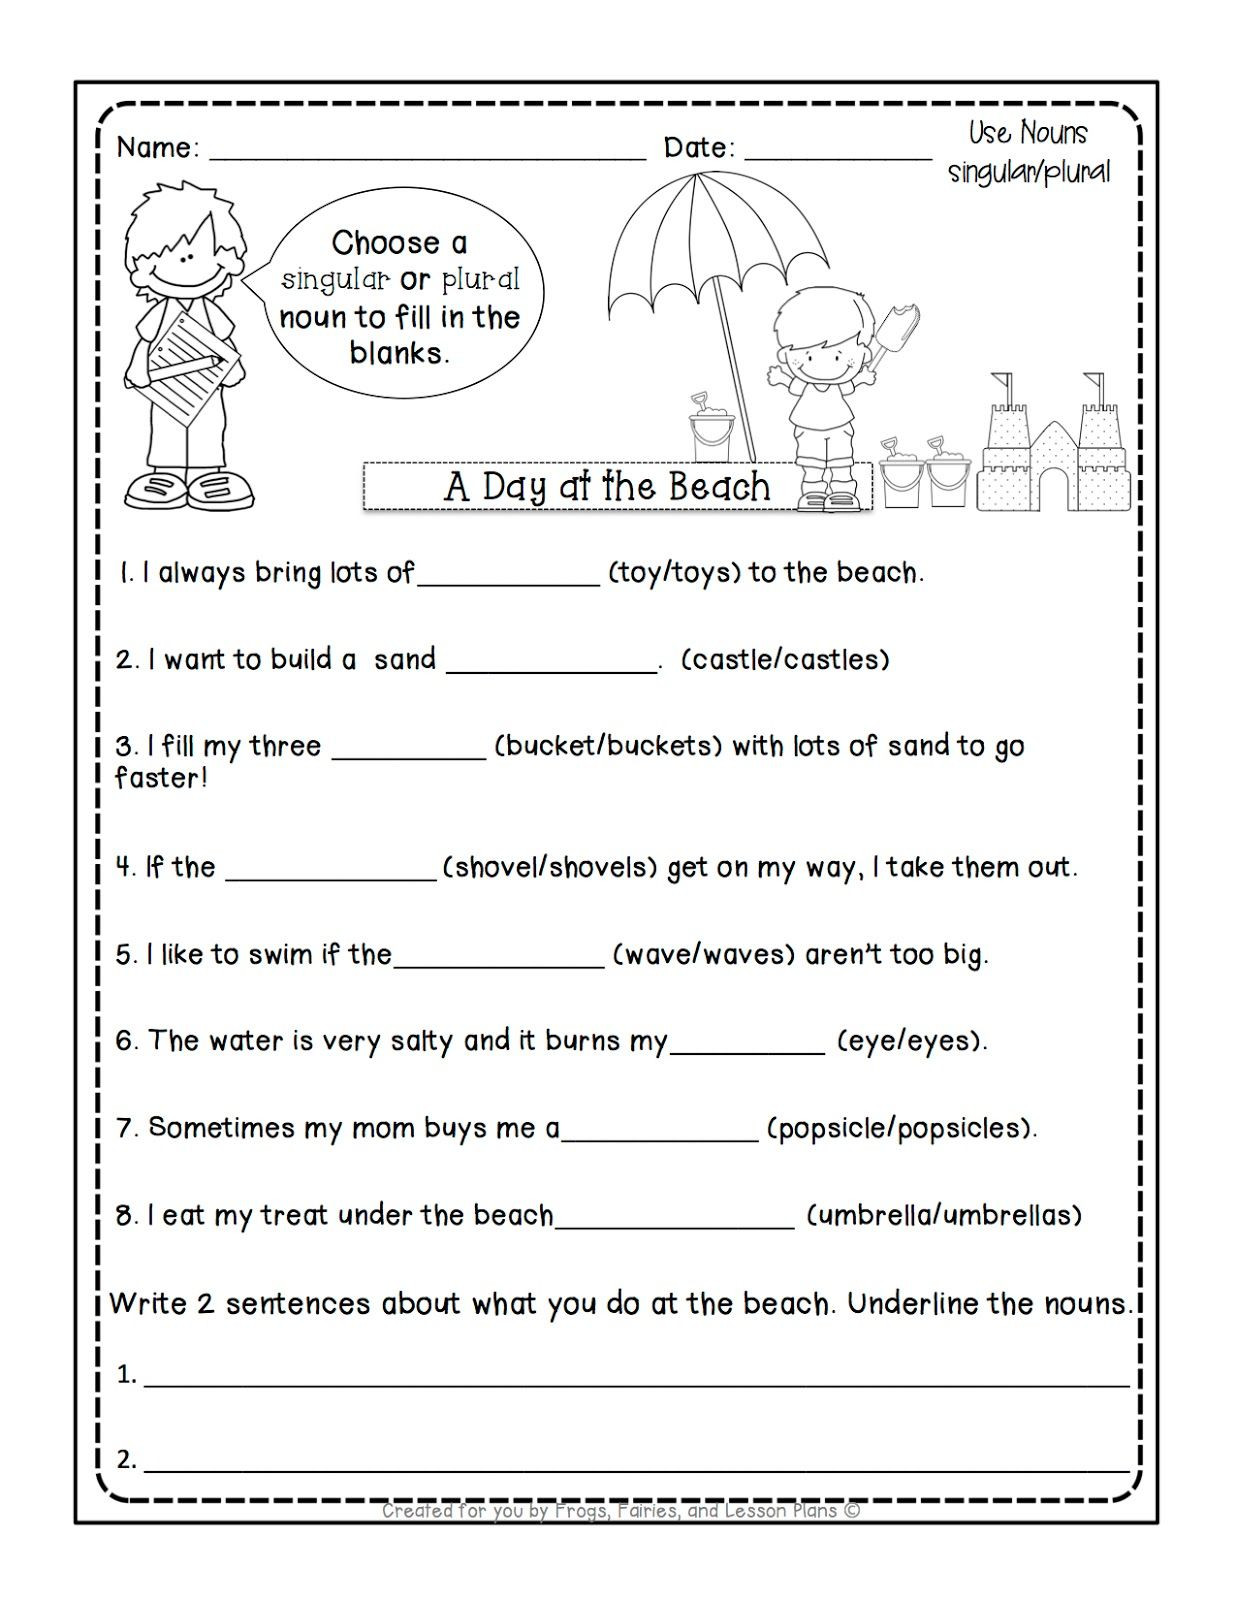 Possessive Nouns Worksheets 1st Grade 5 Noun Lessons You Need to Teach In 1st Grade Part 2